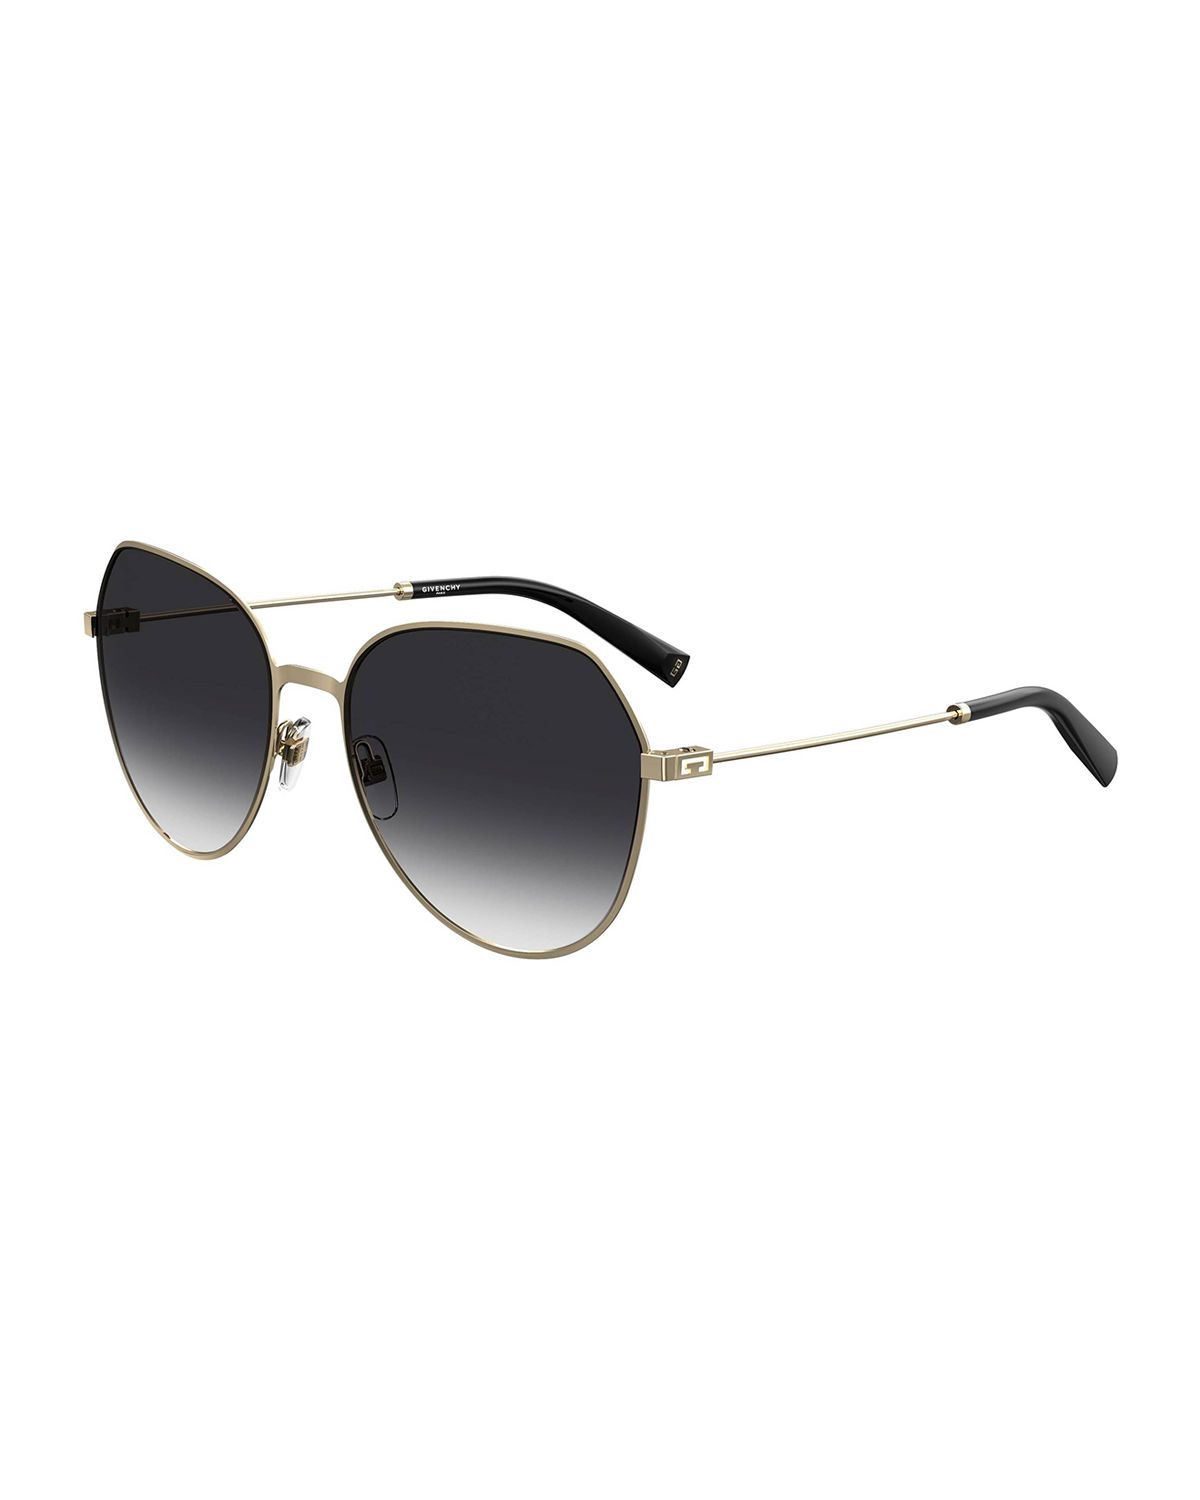 Givenchy SQUARE STAINLESS STEEL SUNGLASSES